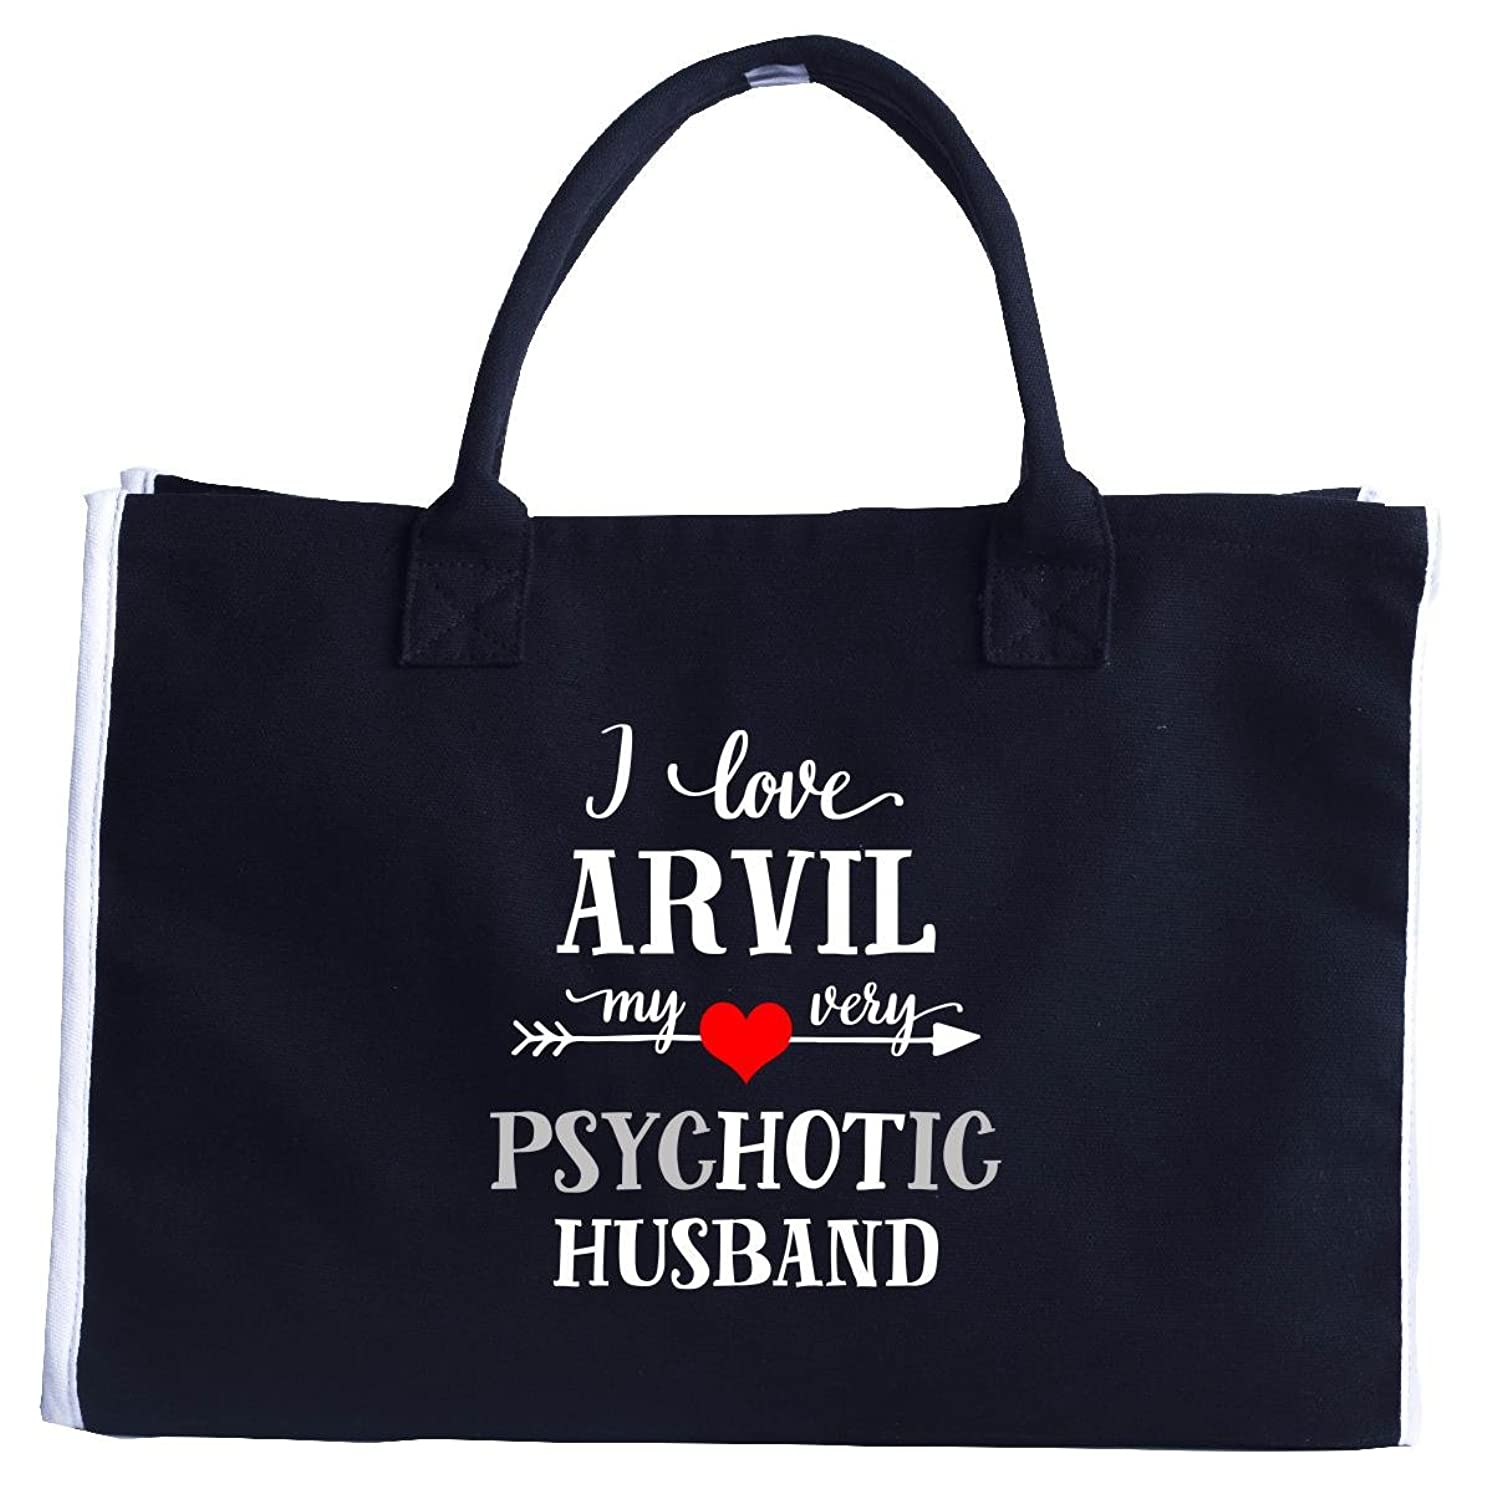 I Love Arvil My Very Psychotic Husband. Gift For Her - Fashion Tote Bag